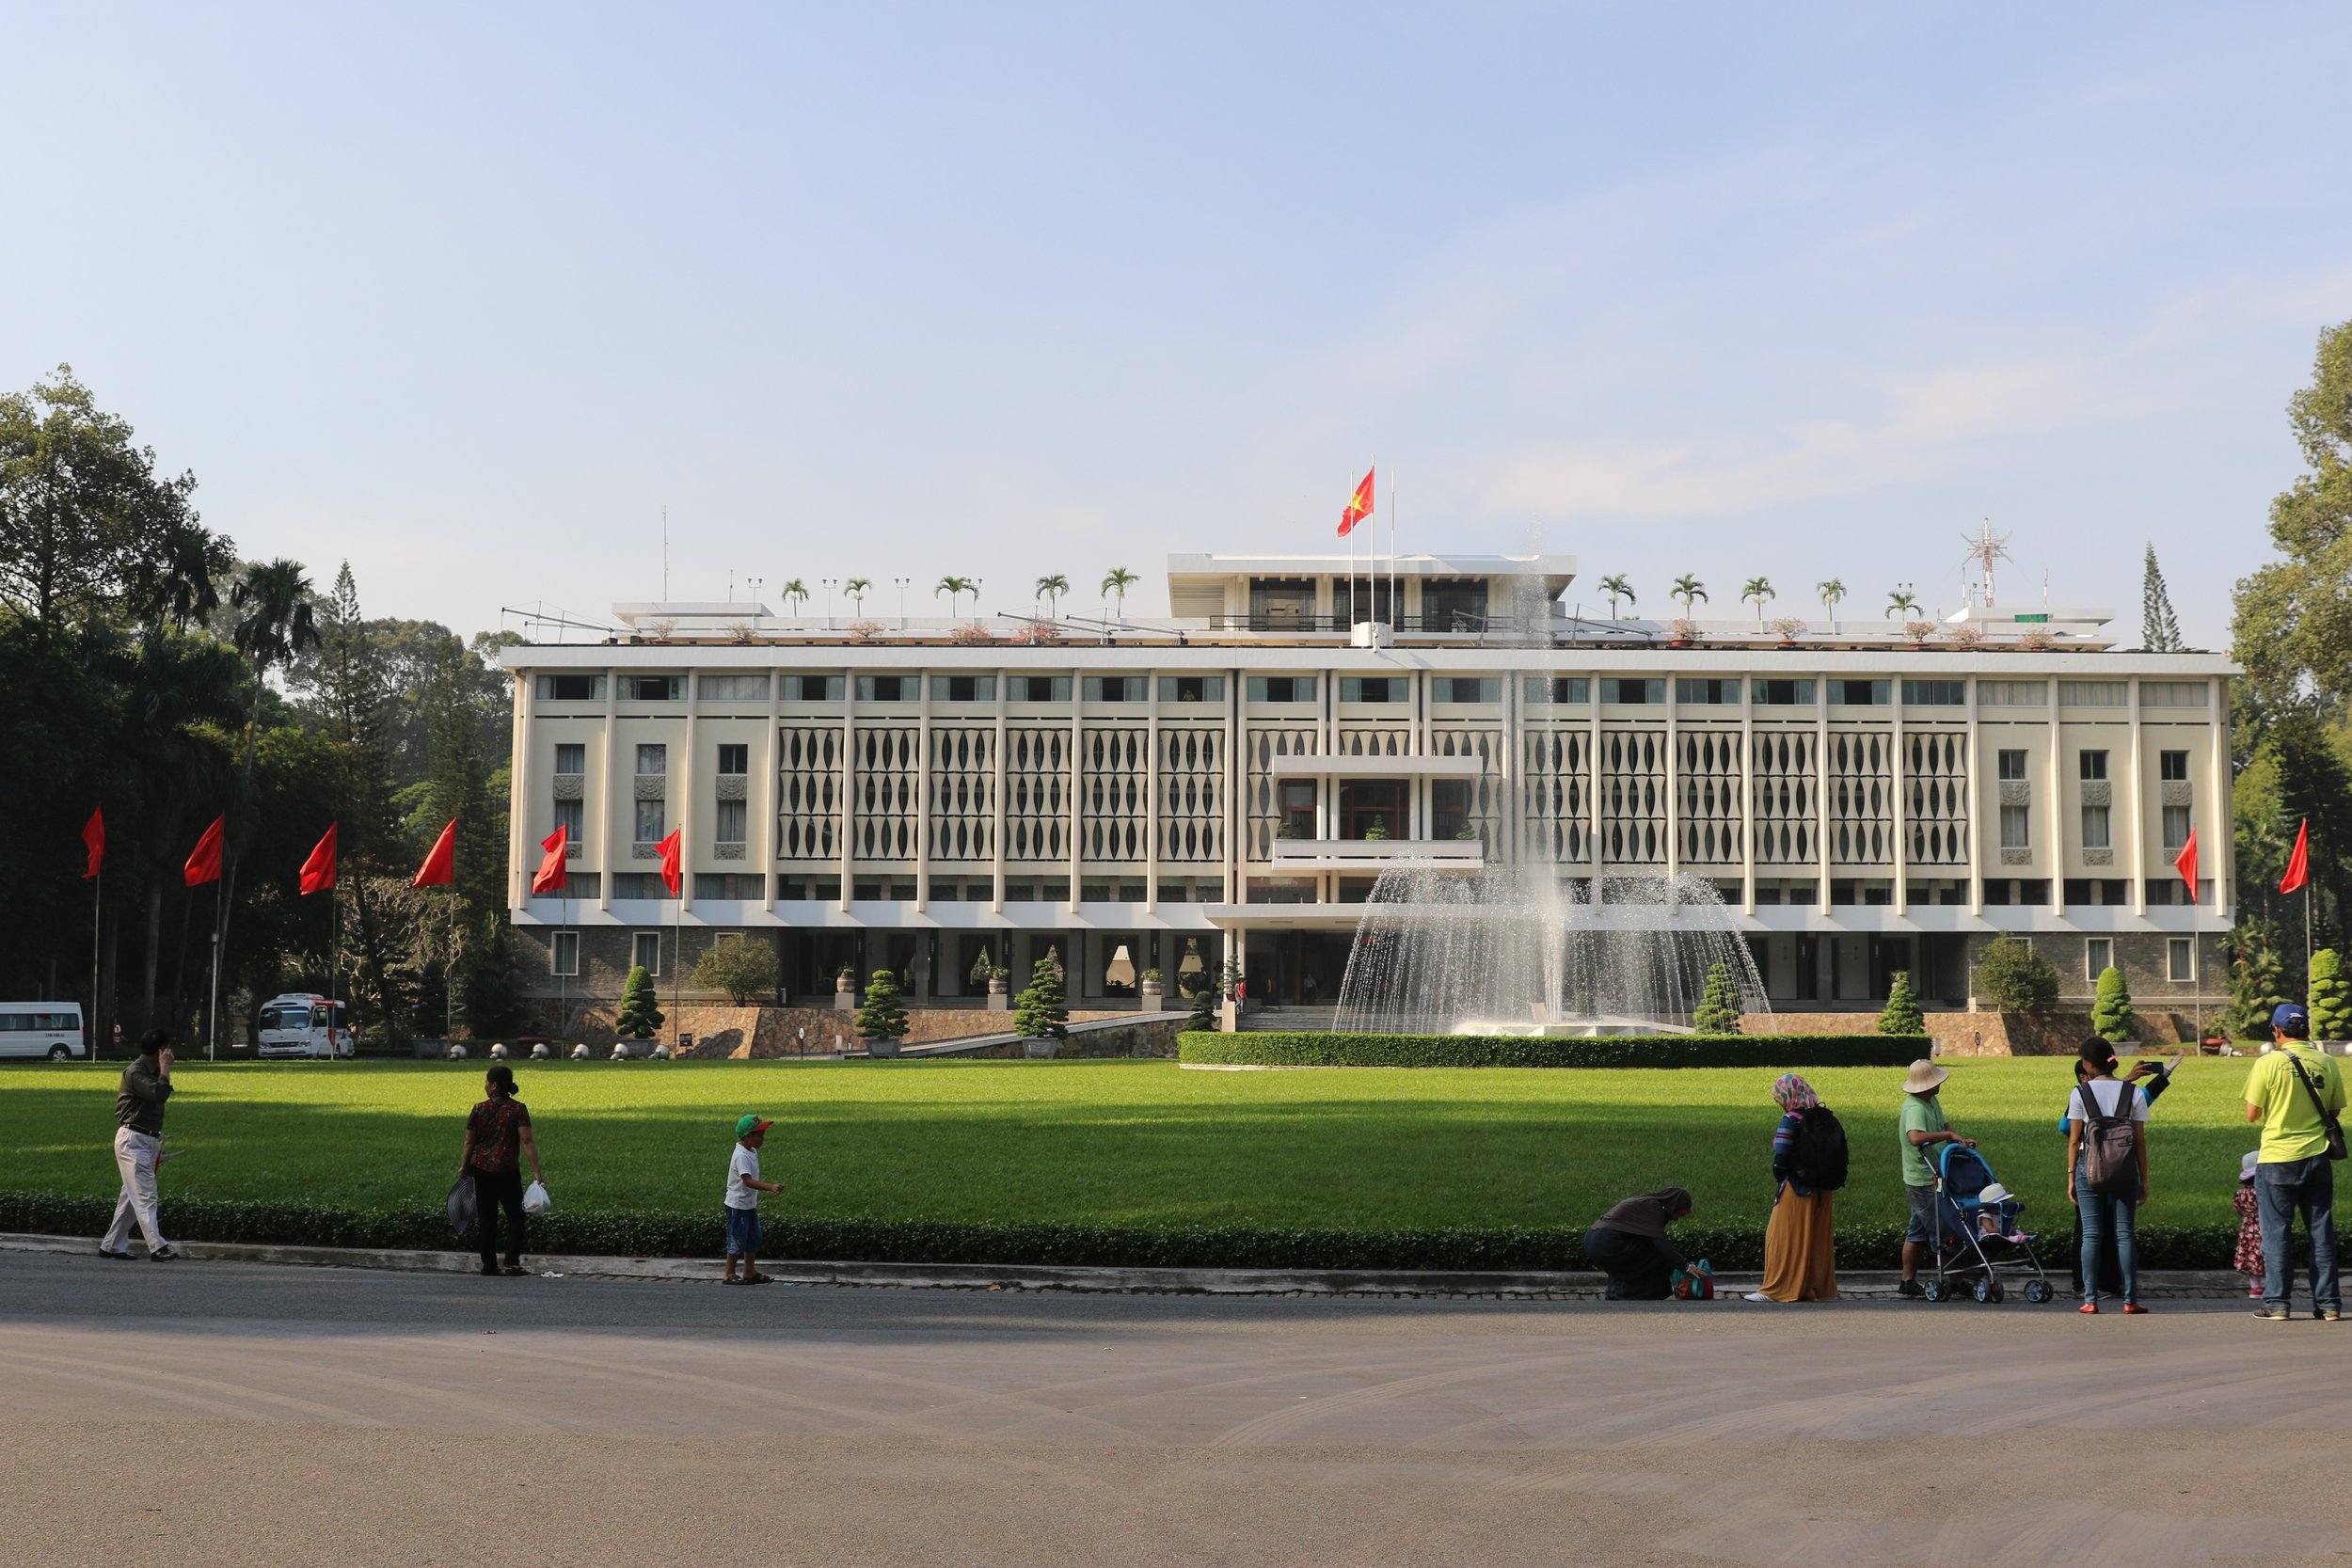 3 Weeks in Vietnam - The Reunification Palace in Saigon/Ho Chi Minh City